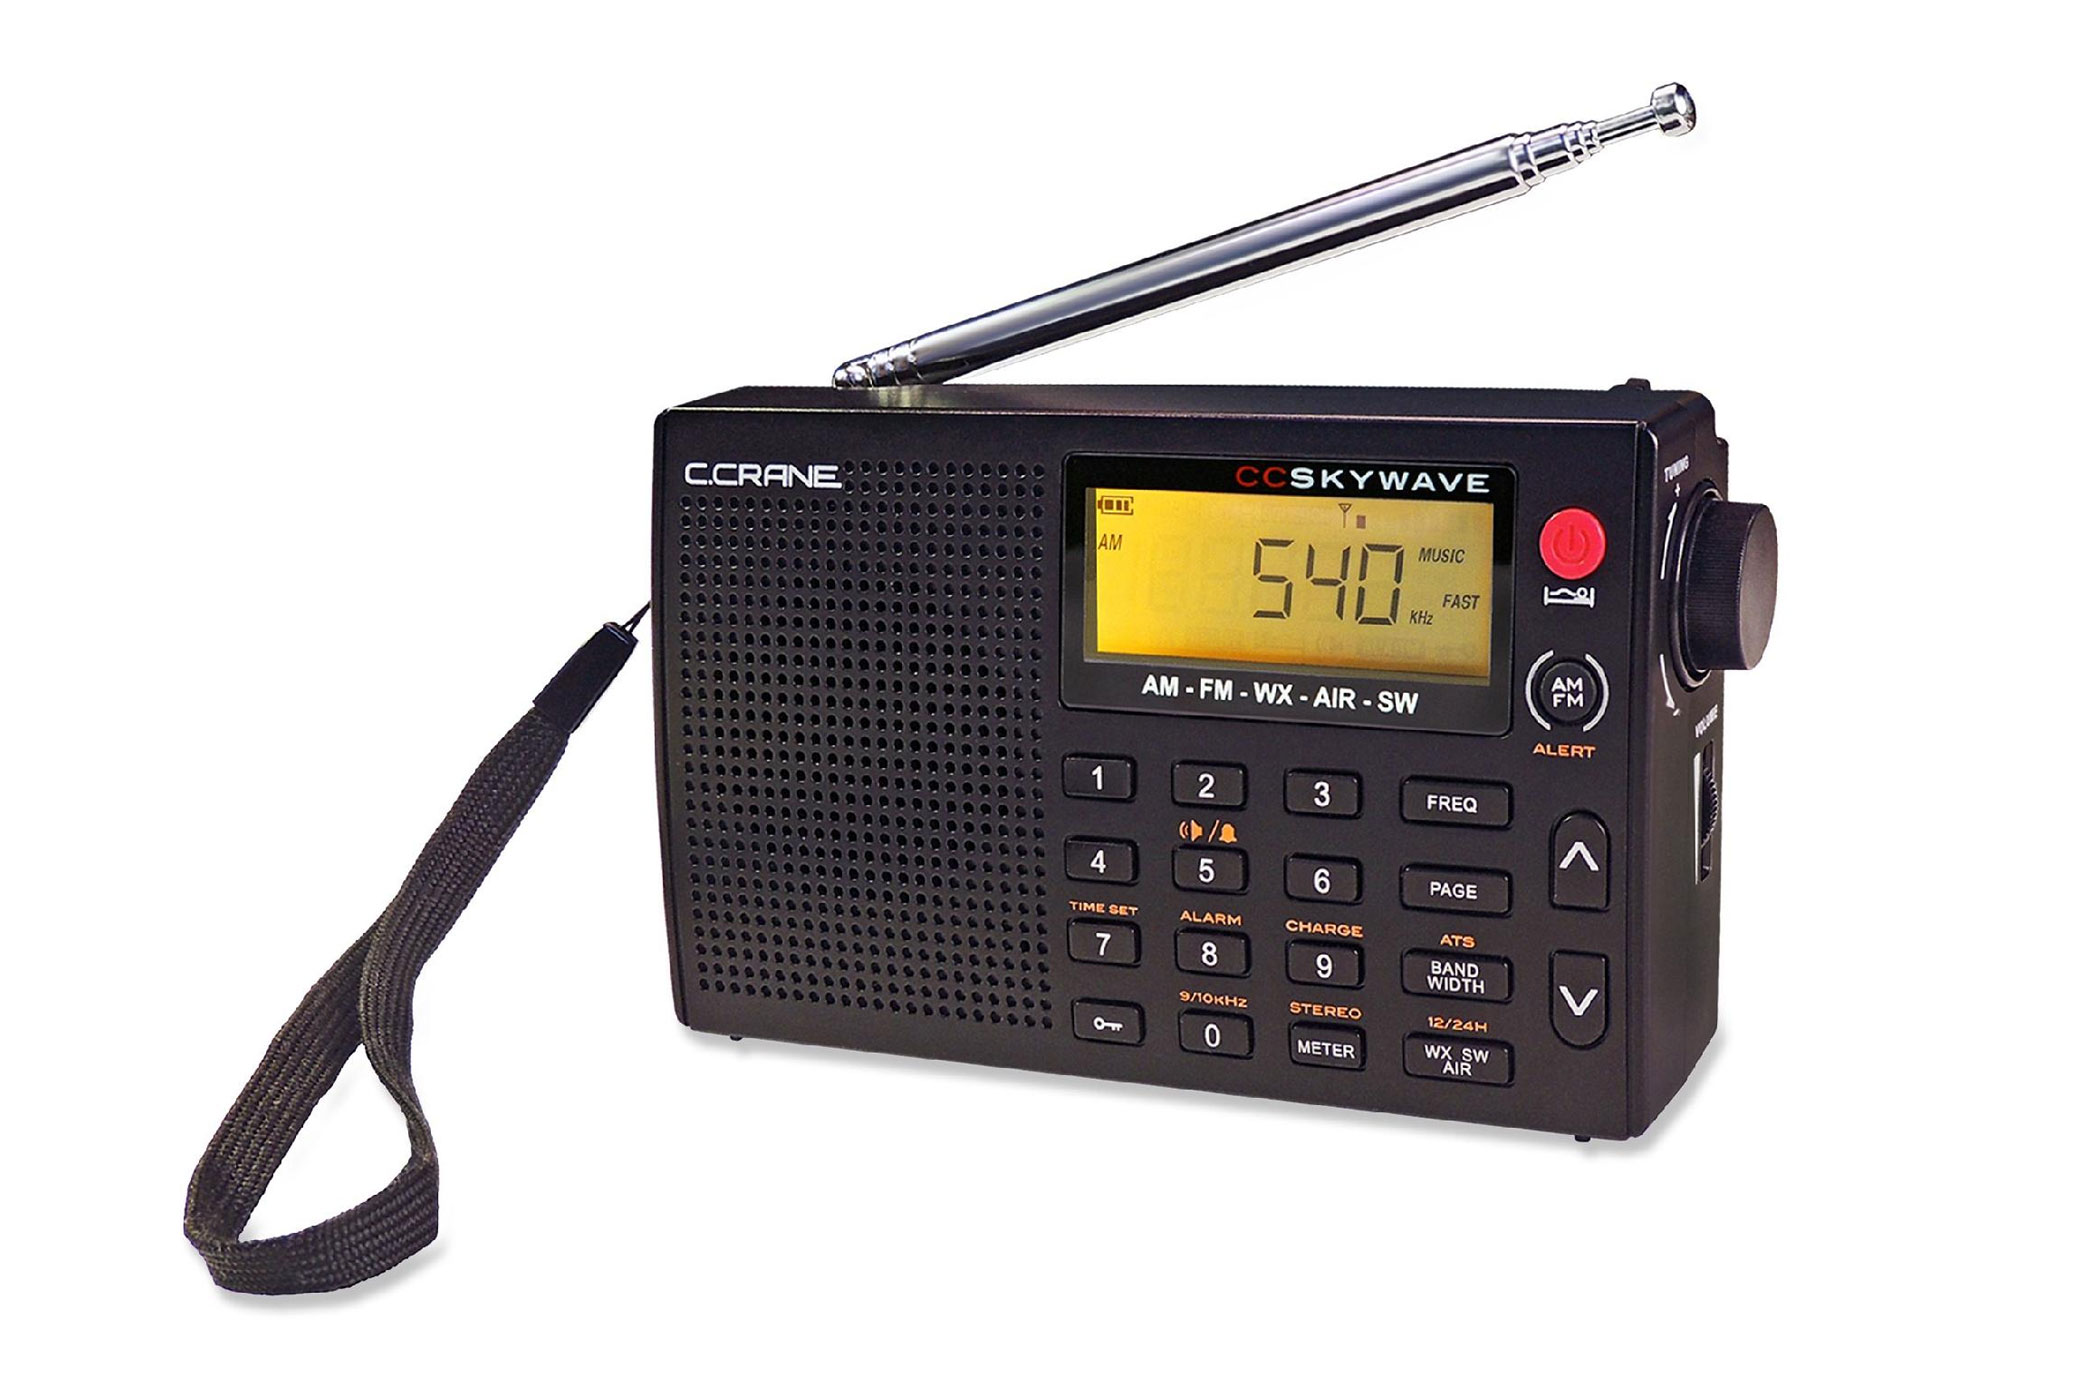 C Crane Skywave Pocket Radio